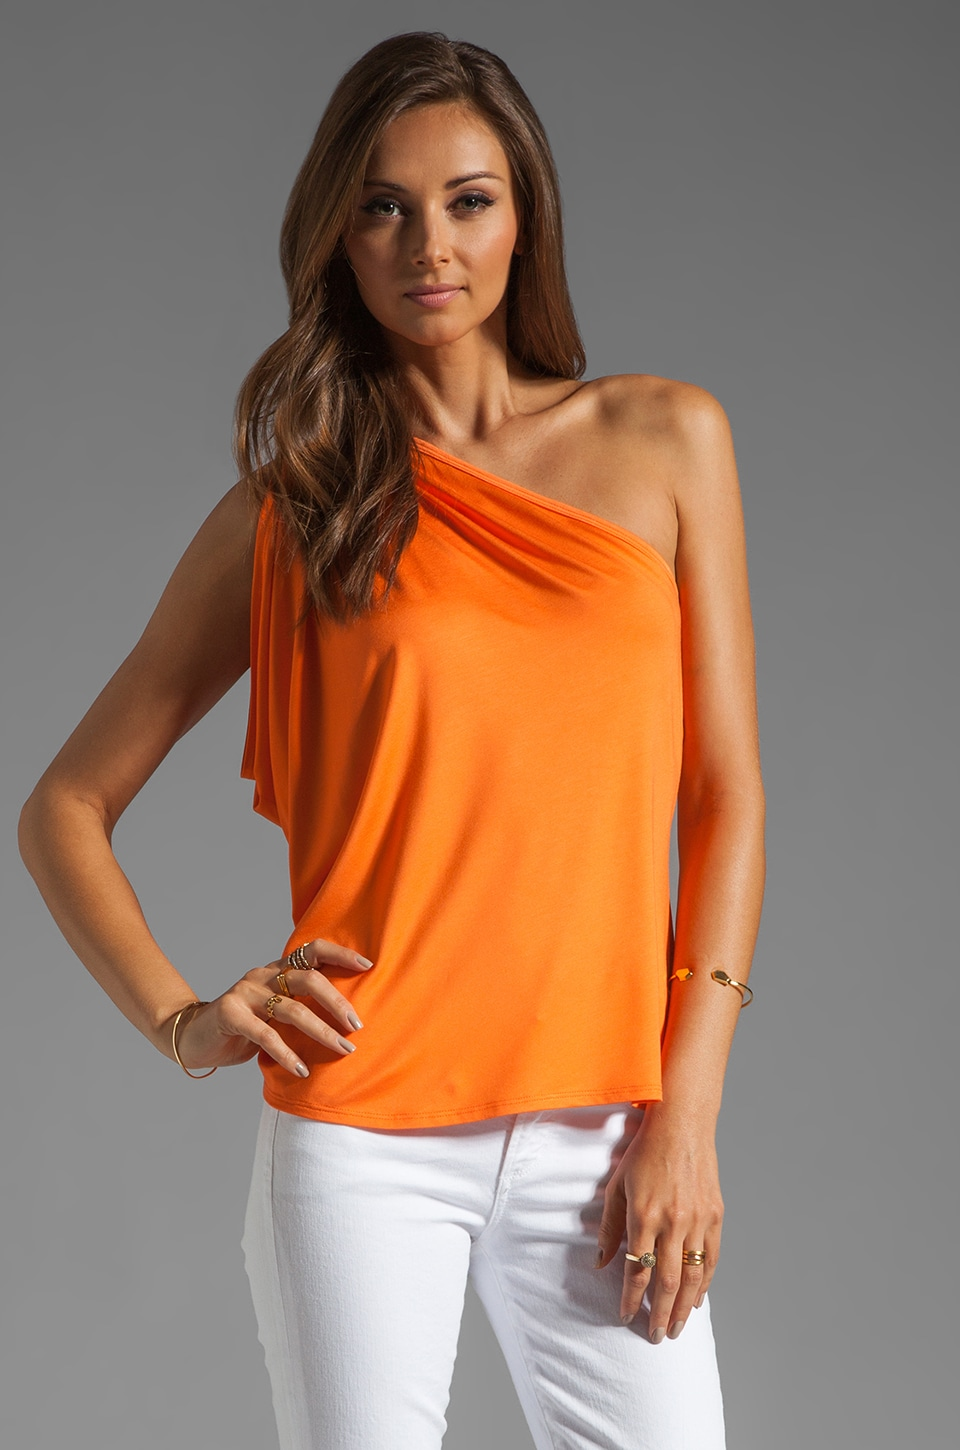 Trina Turk Must Have Jersey Highlight Top in Orange Popsicle